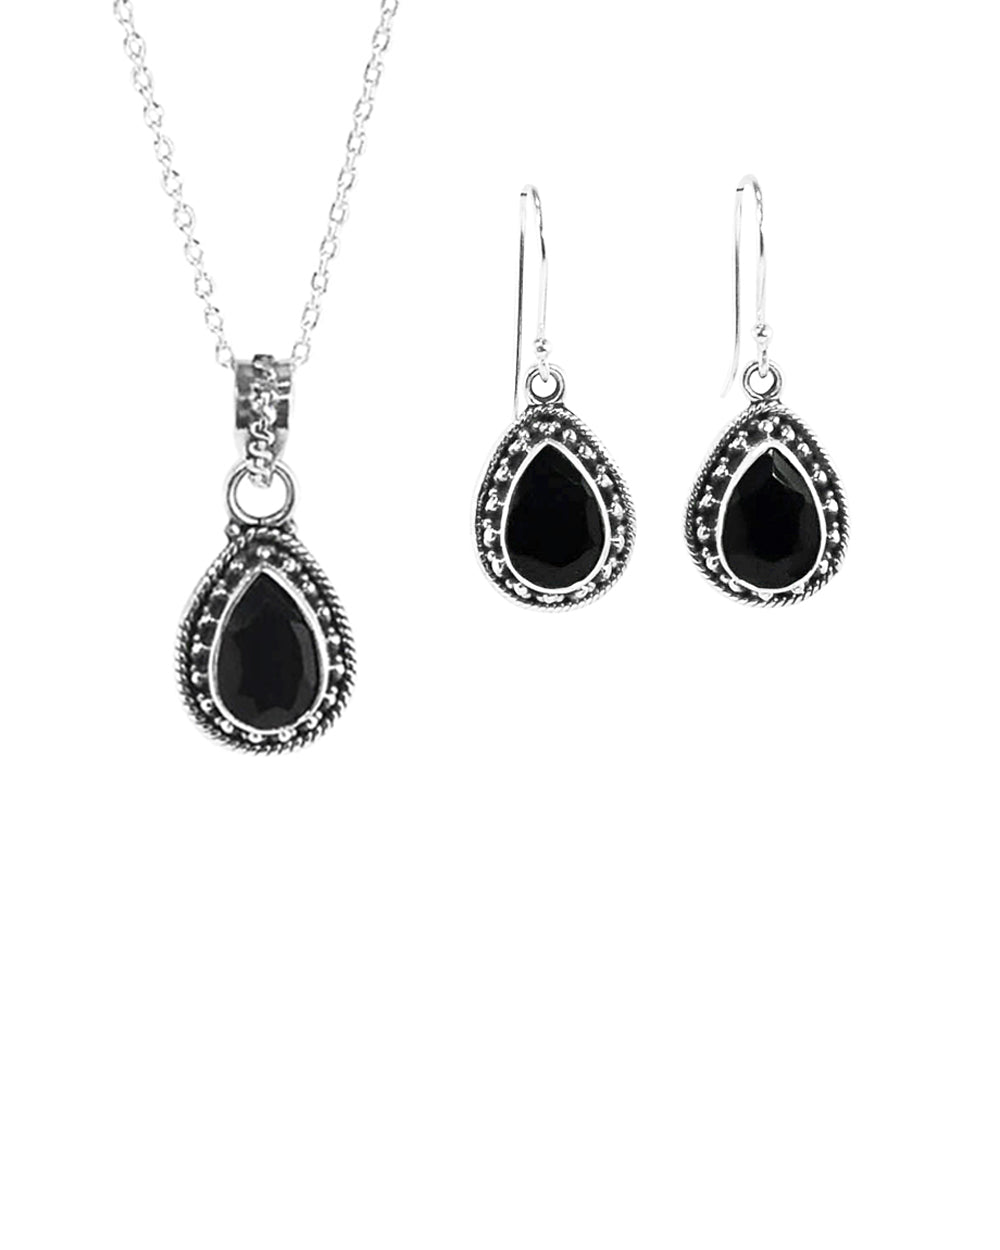 Amalfi Black Onyx Necklace and Earrings Set in Sterling Silver